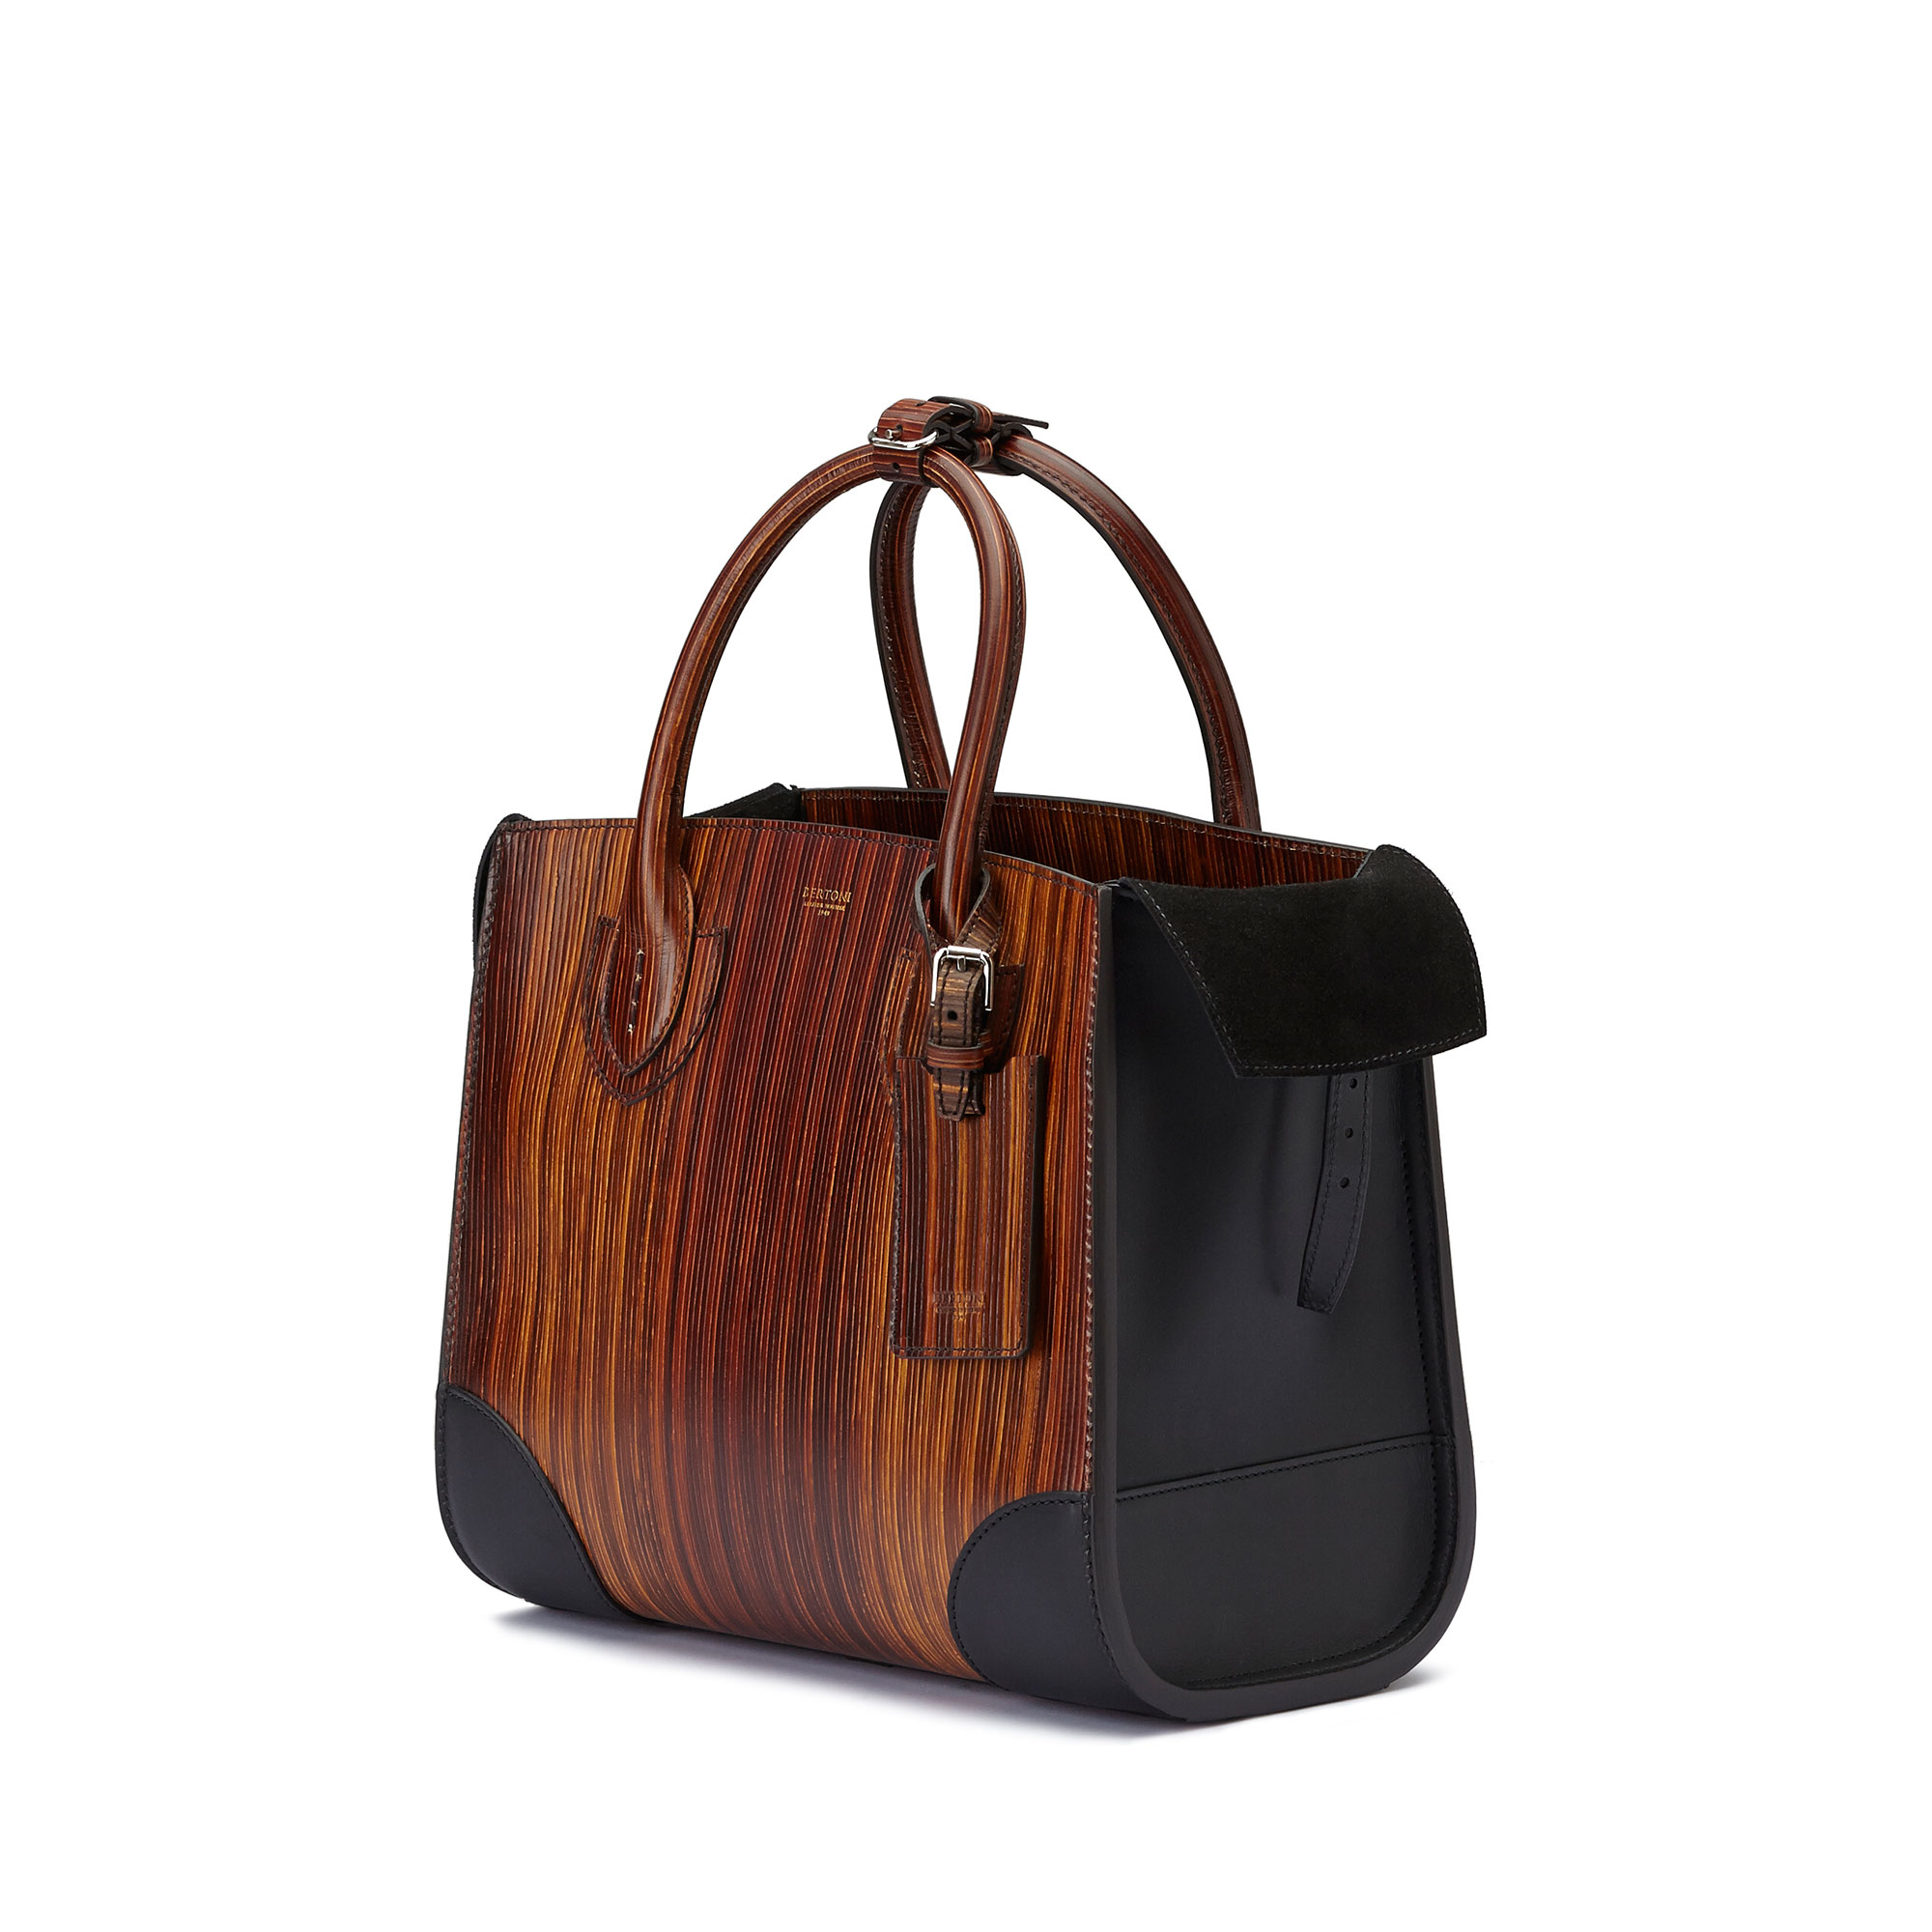 The wood effect french calf wood leather Darcy medium bag by Bertoni 1949 04